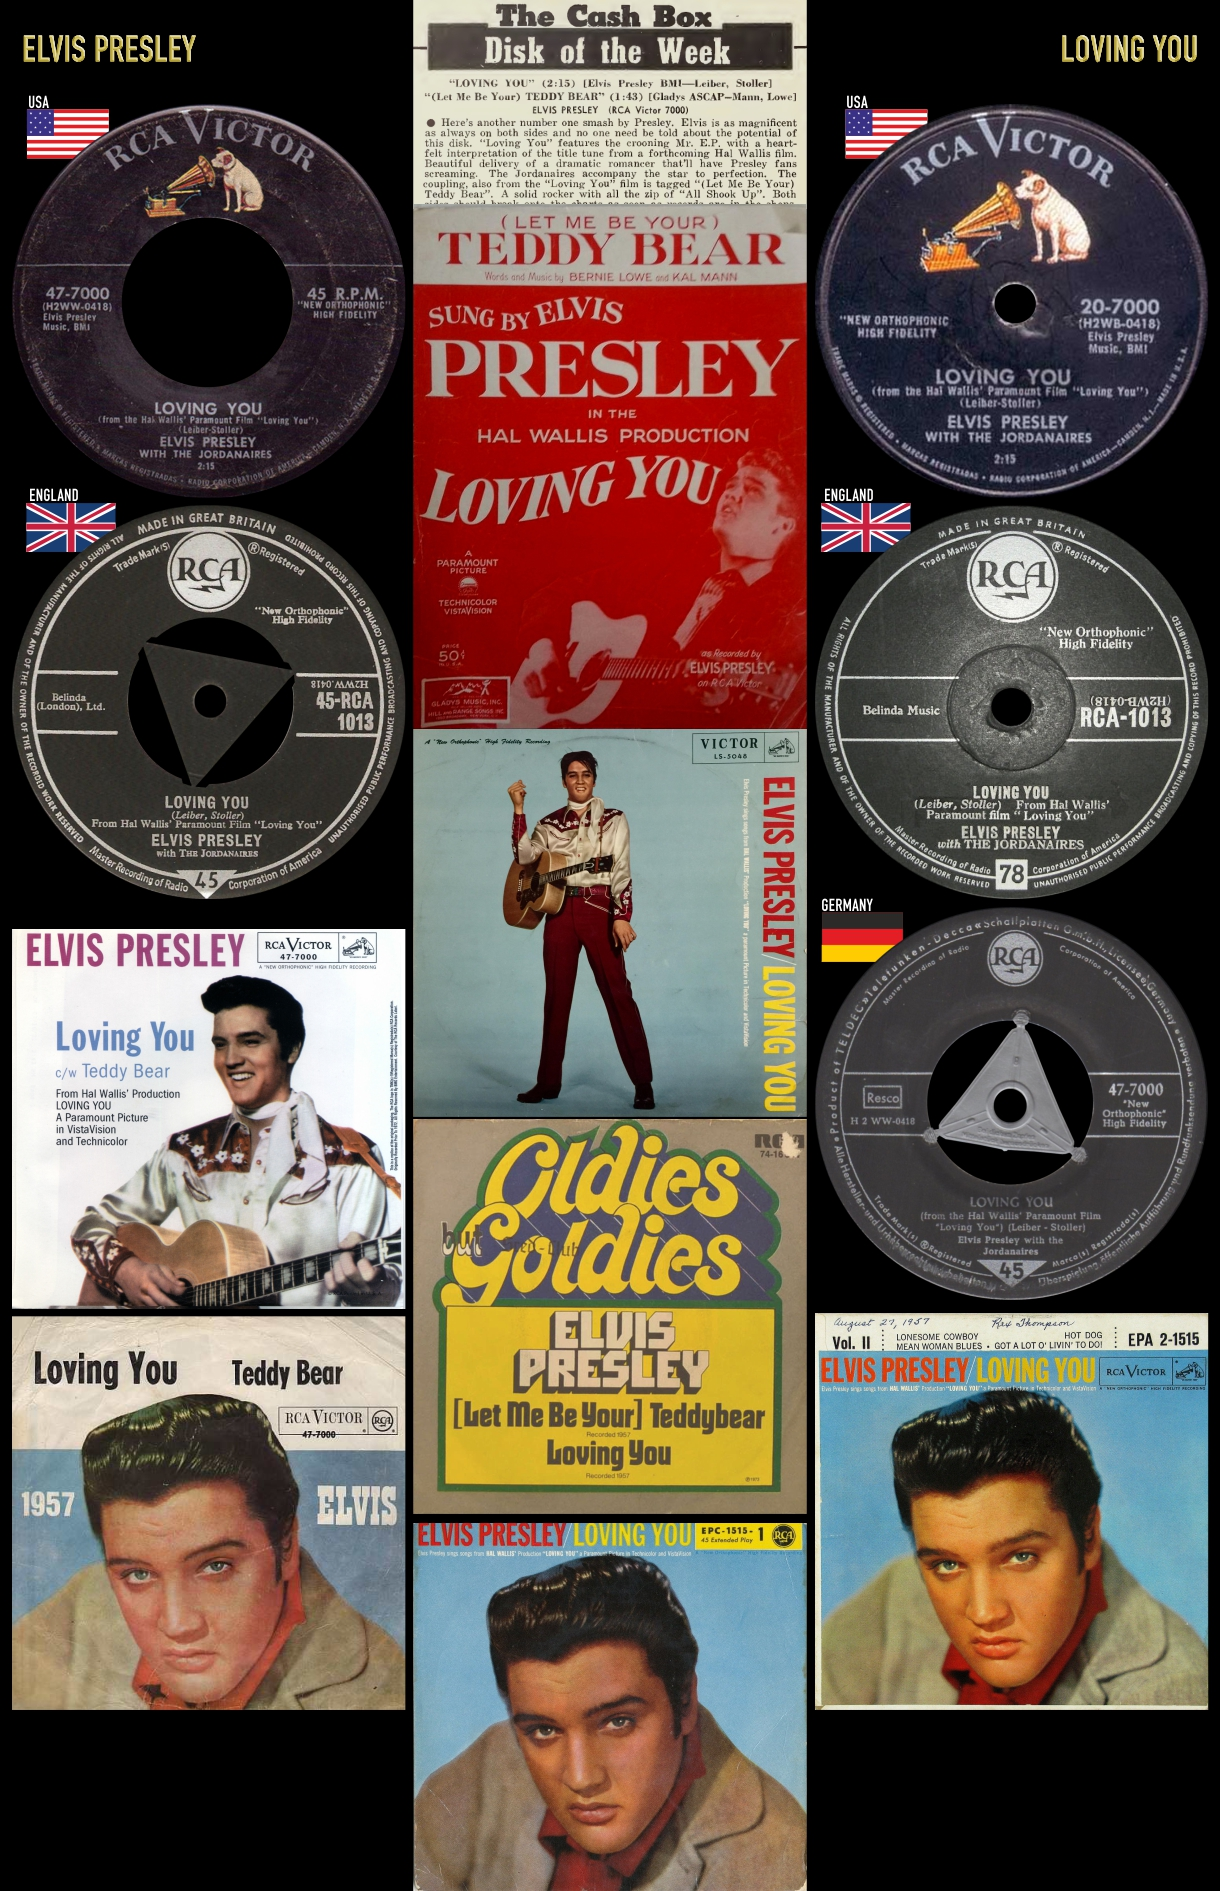 570622_Elvis Presley_Loving You